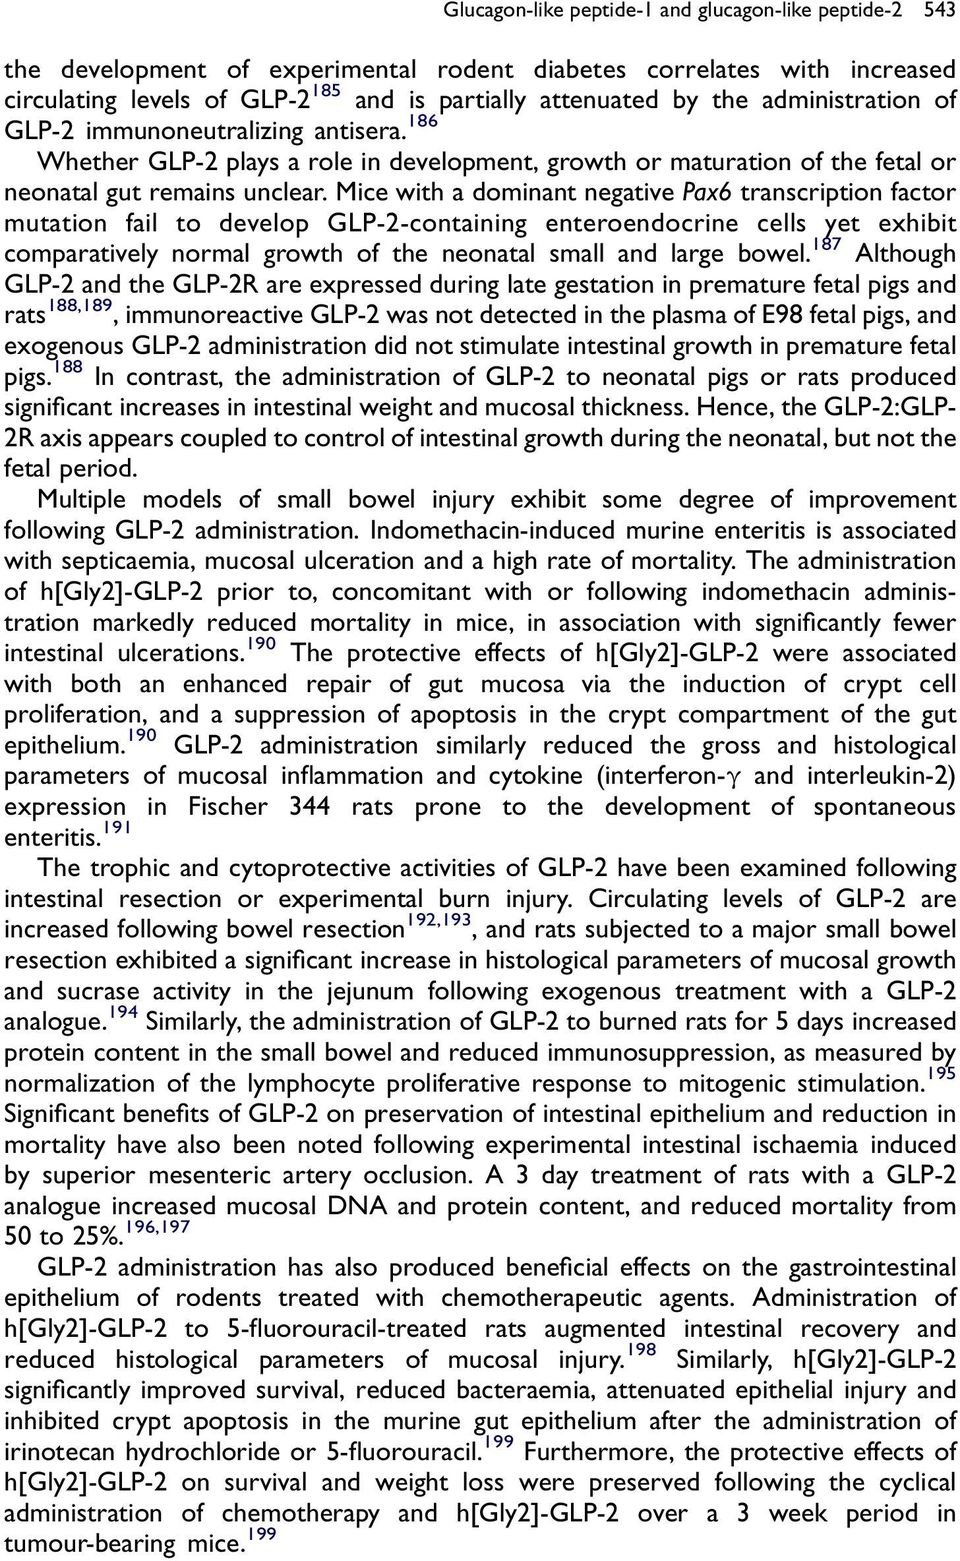 Mice with a dominant negative Pax6 transcription factor mutation fail to develop GLP-2-containing enteroendocrine cells yet exhibit comparatively normal growth of the neonatal small and large bowel.